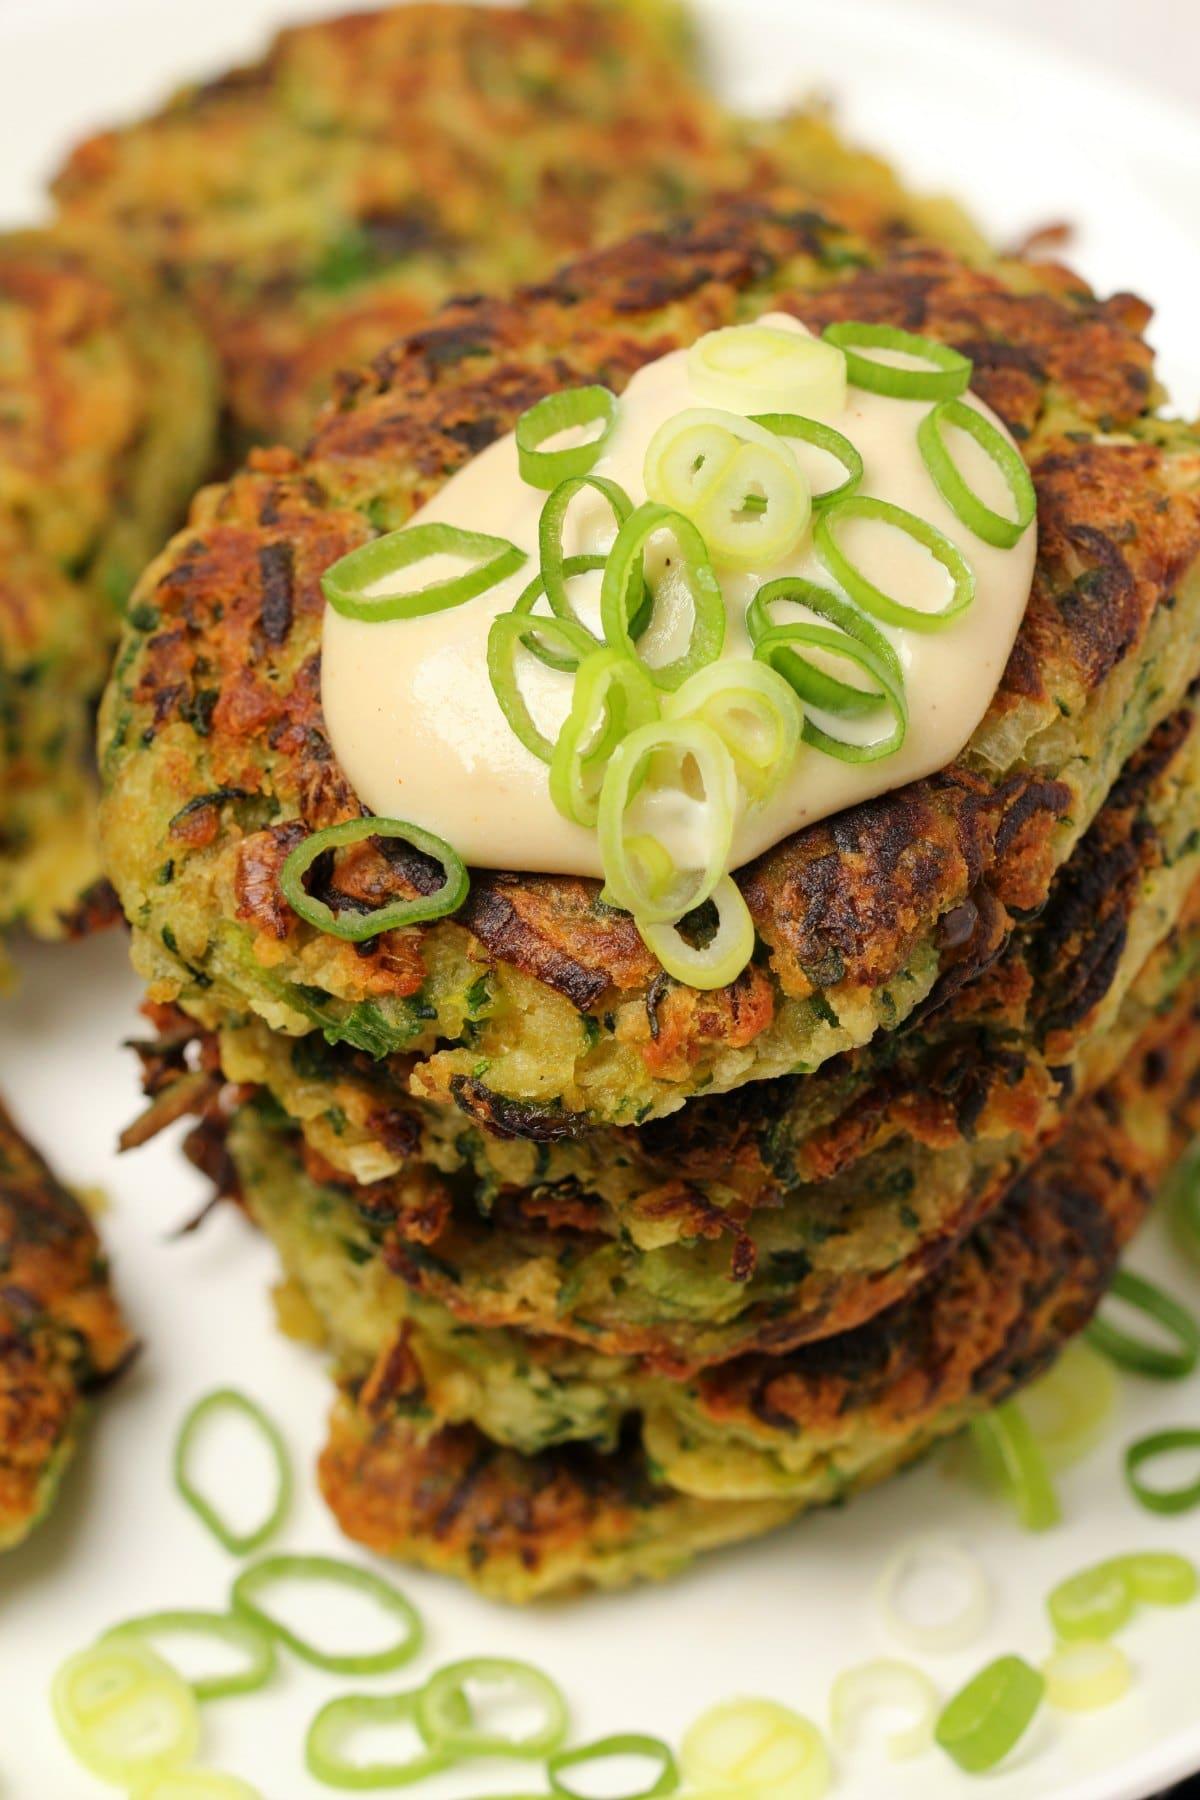 Vegan zucchini fritters topped with vegan sour cream and chopped spring onions on a white plate.